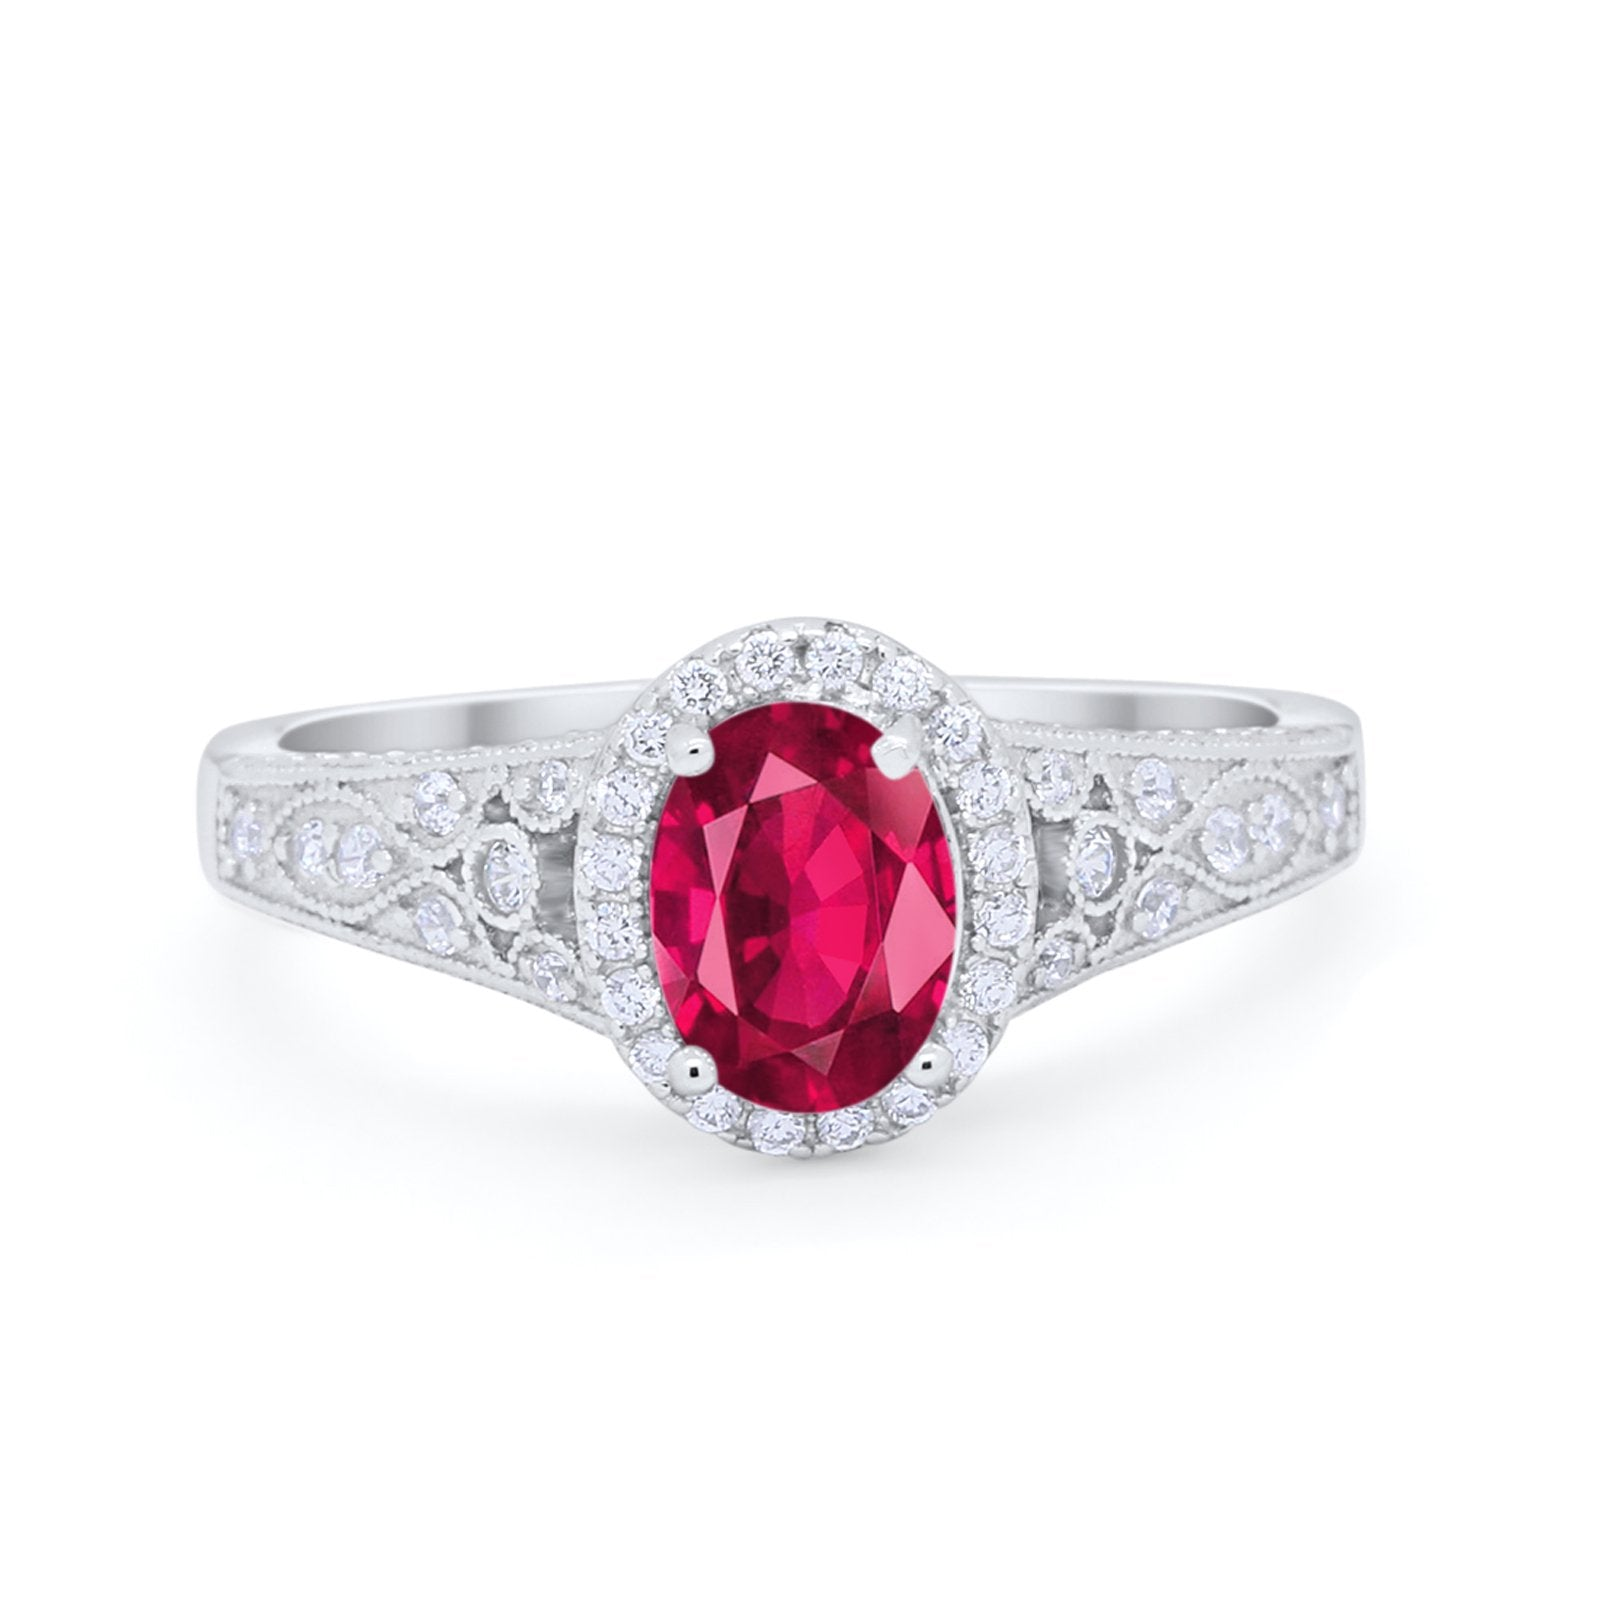 Vintage Style Oval Wedding Ring Simulated Ruby CZ 925 Sterling Silver